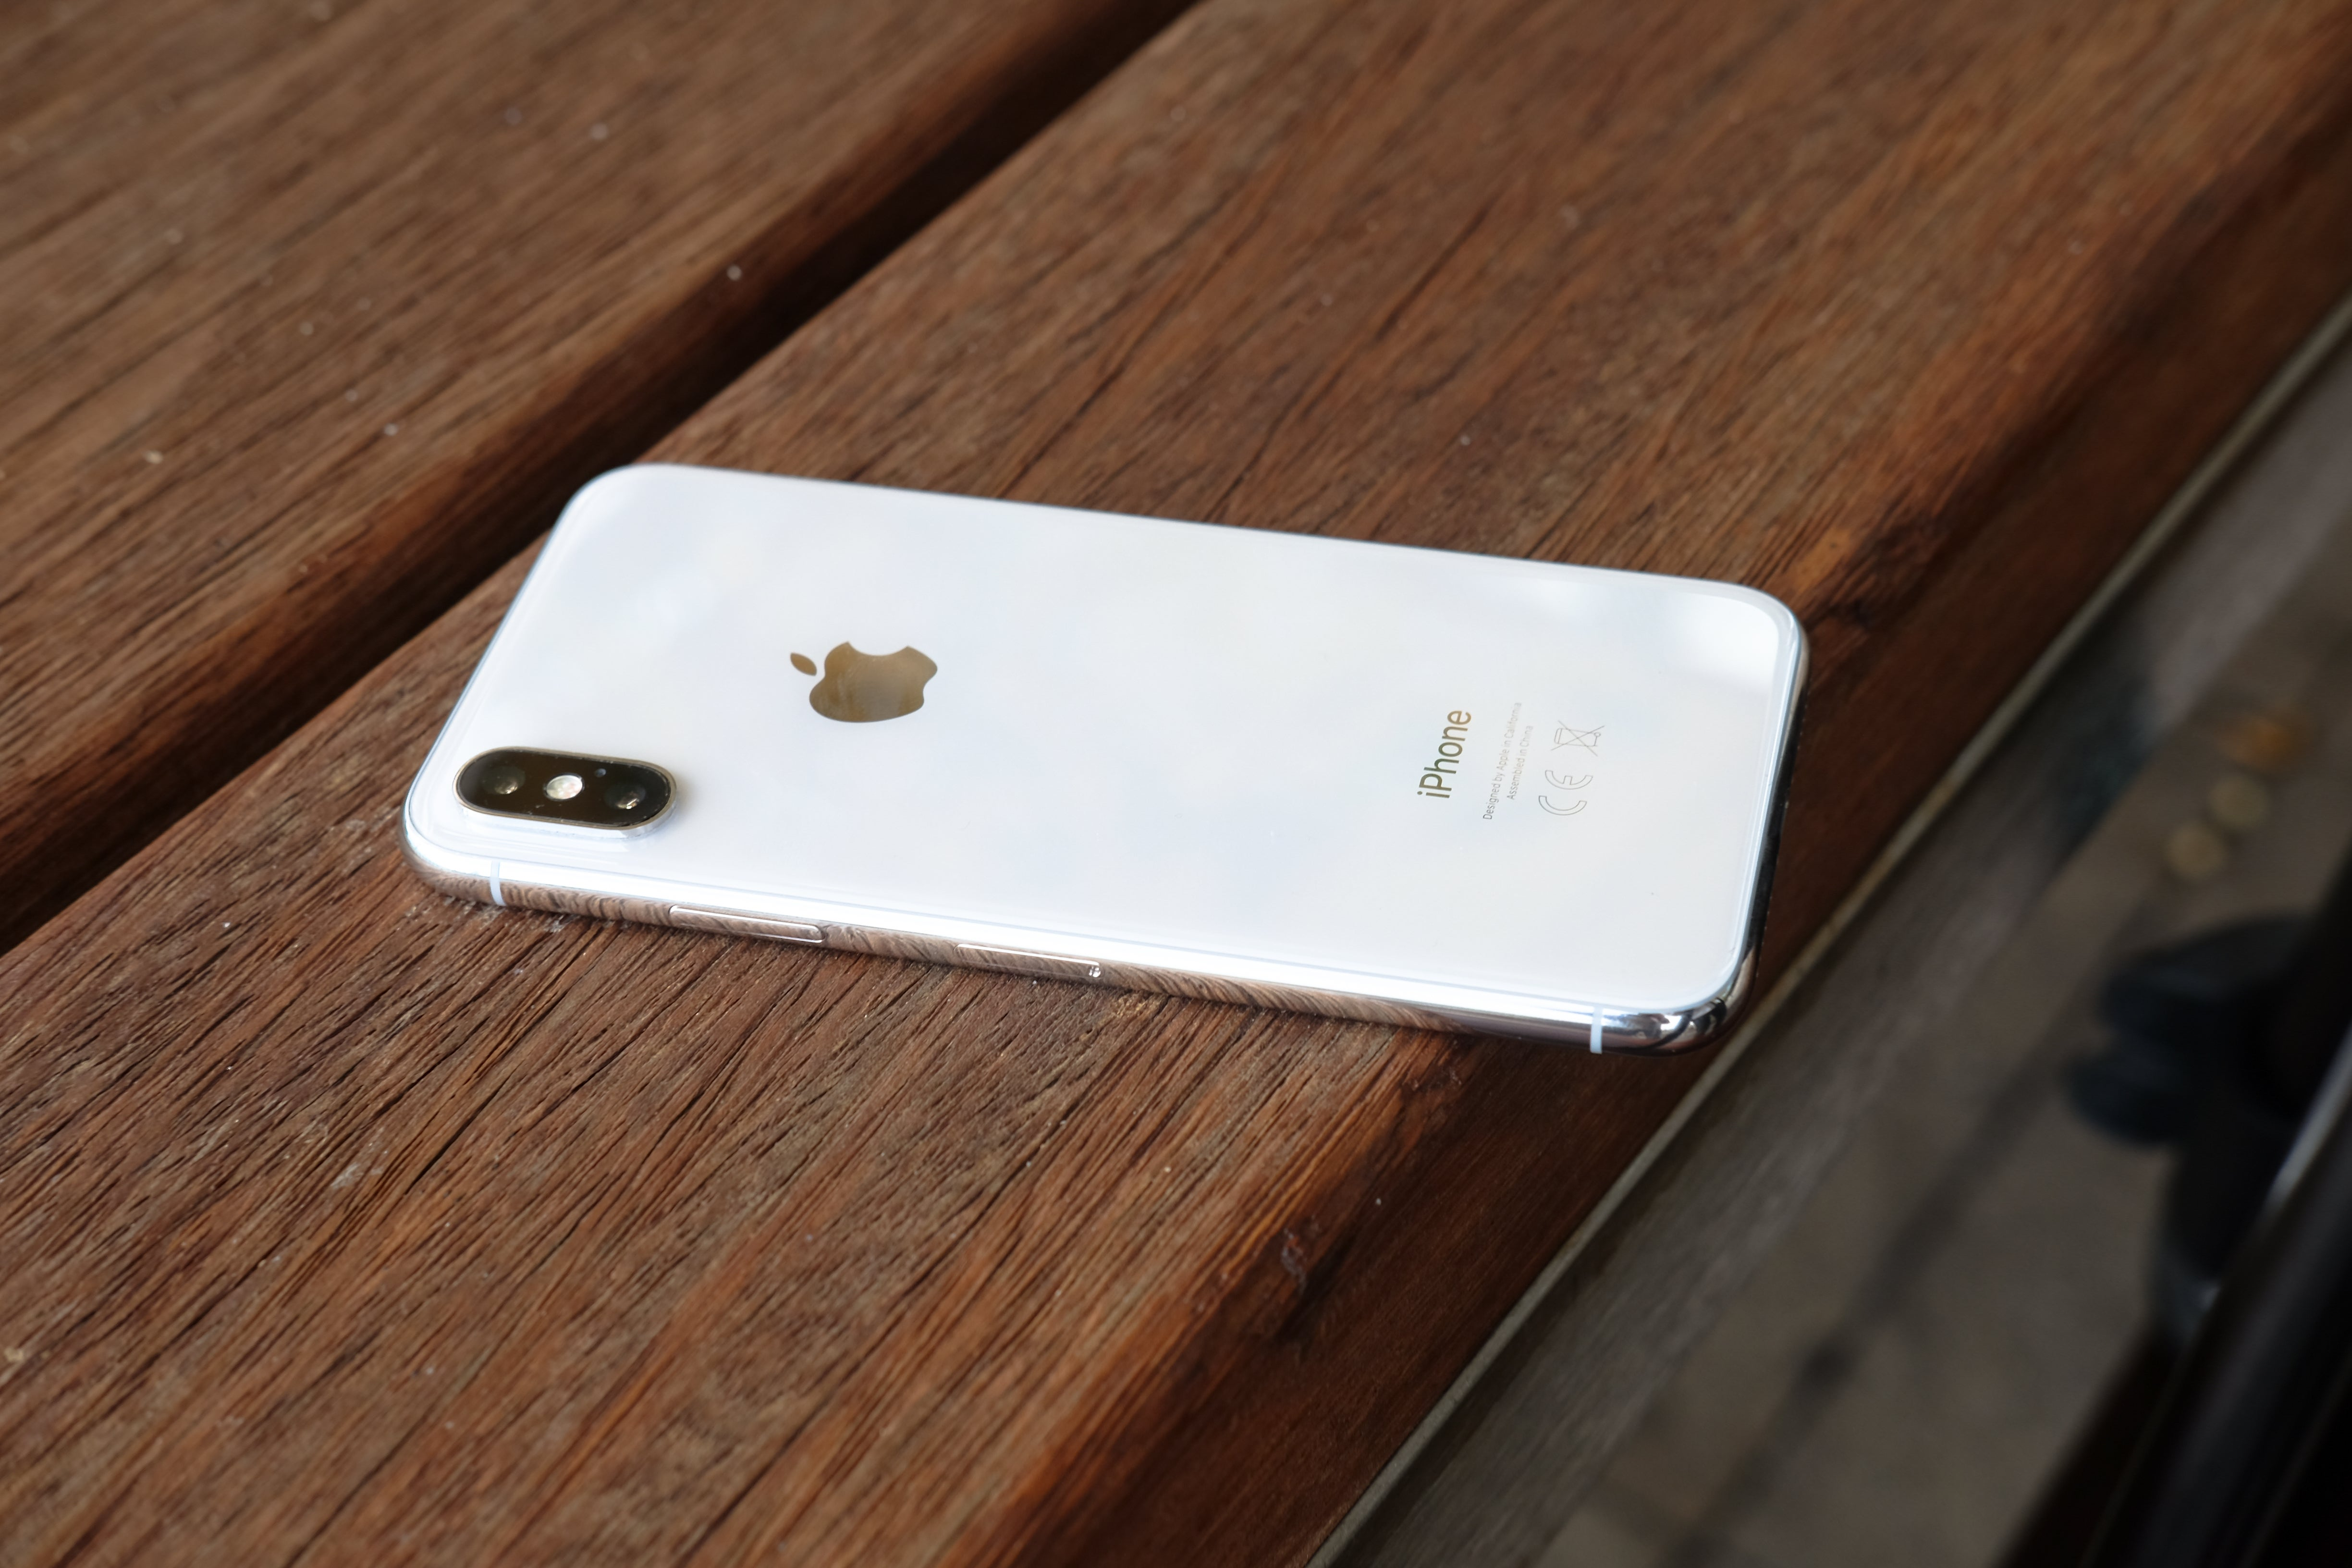 2019 Iphone To Copy Huawei P20 Pro S Most Important